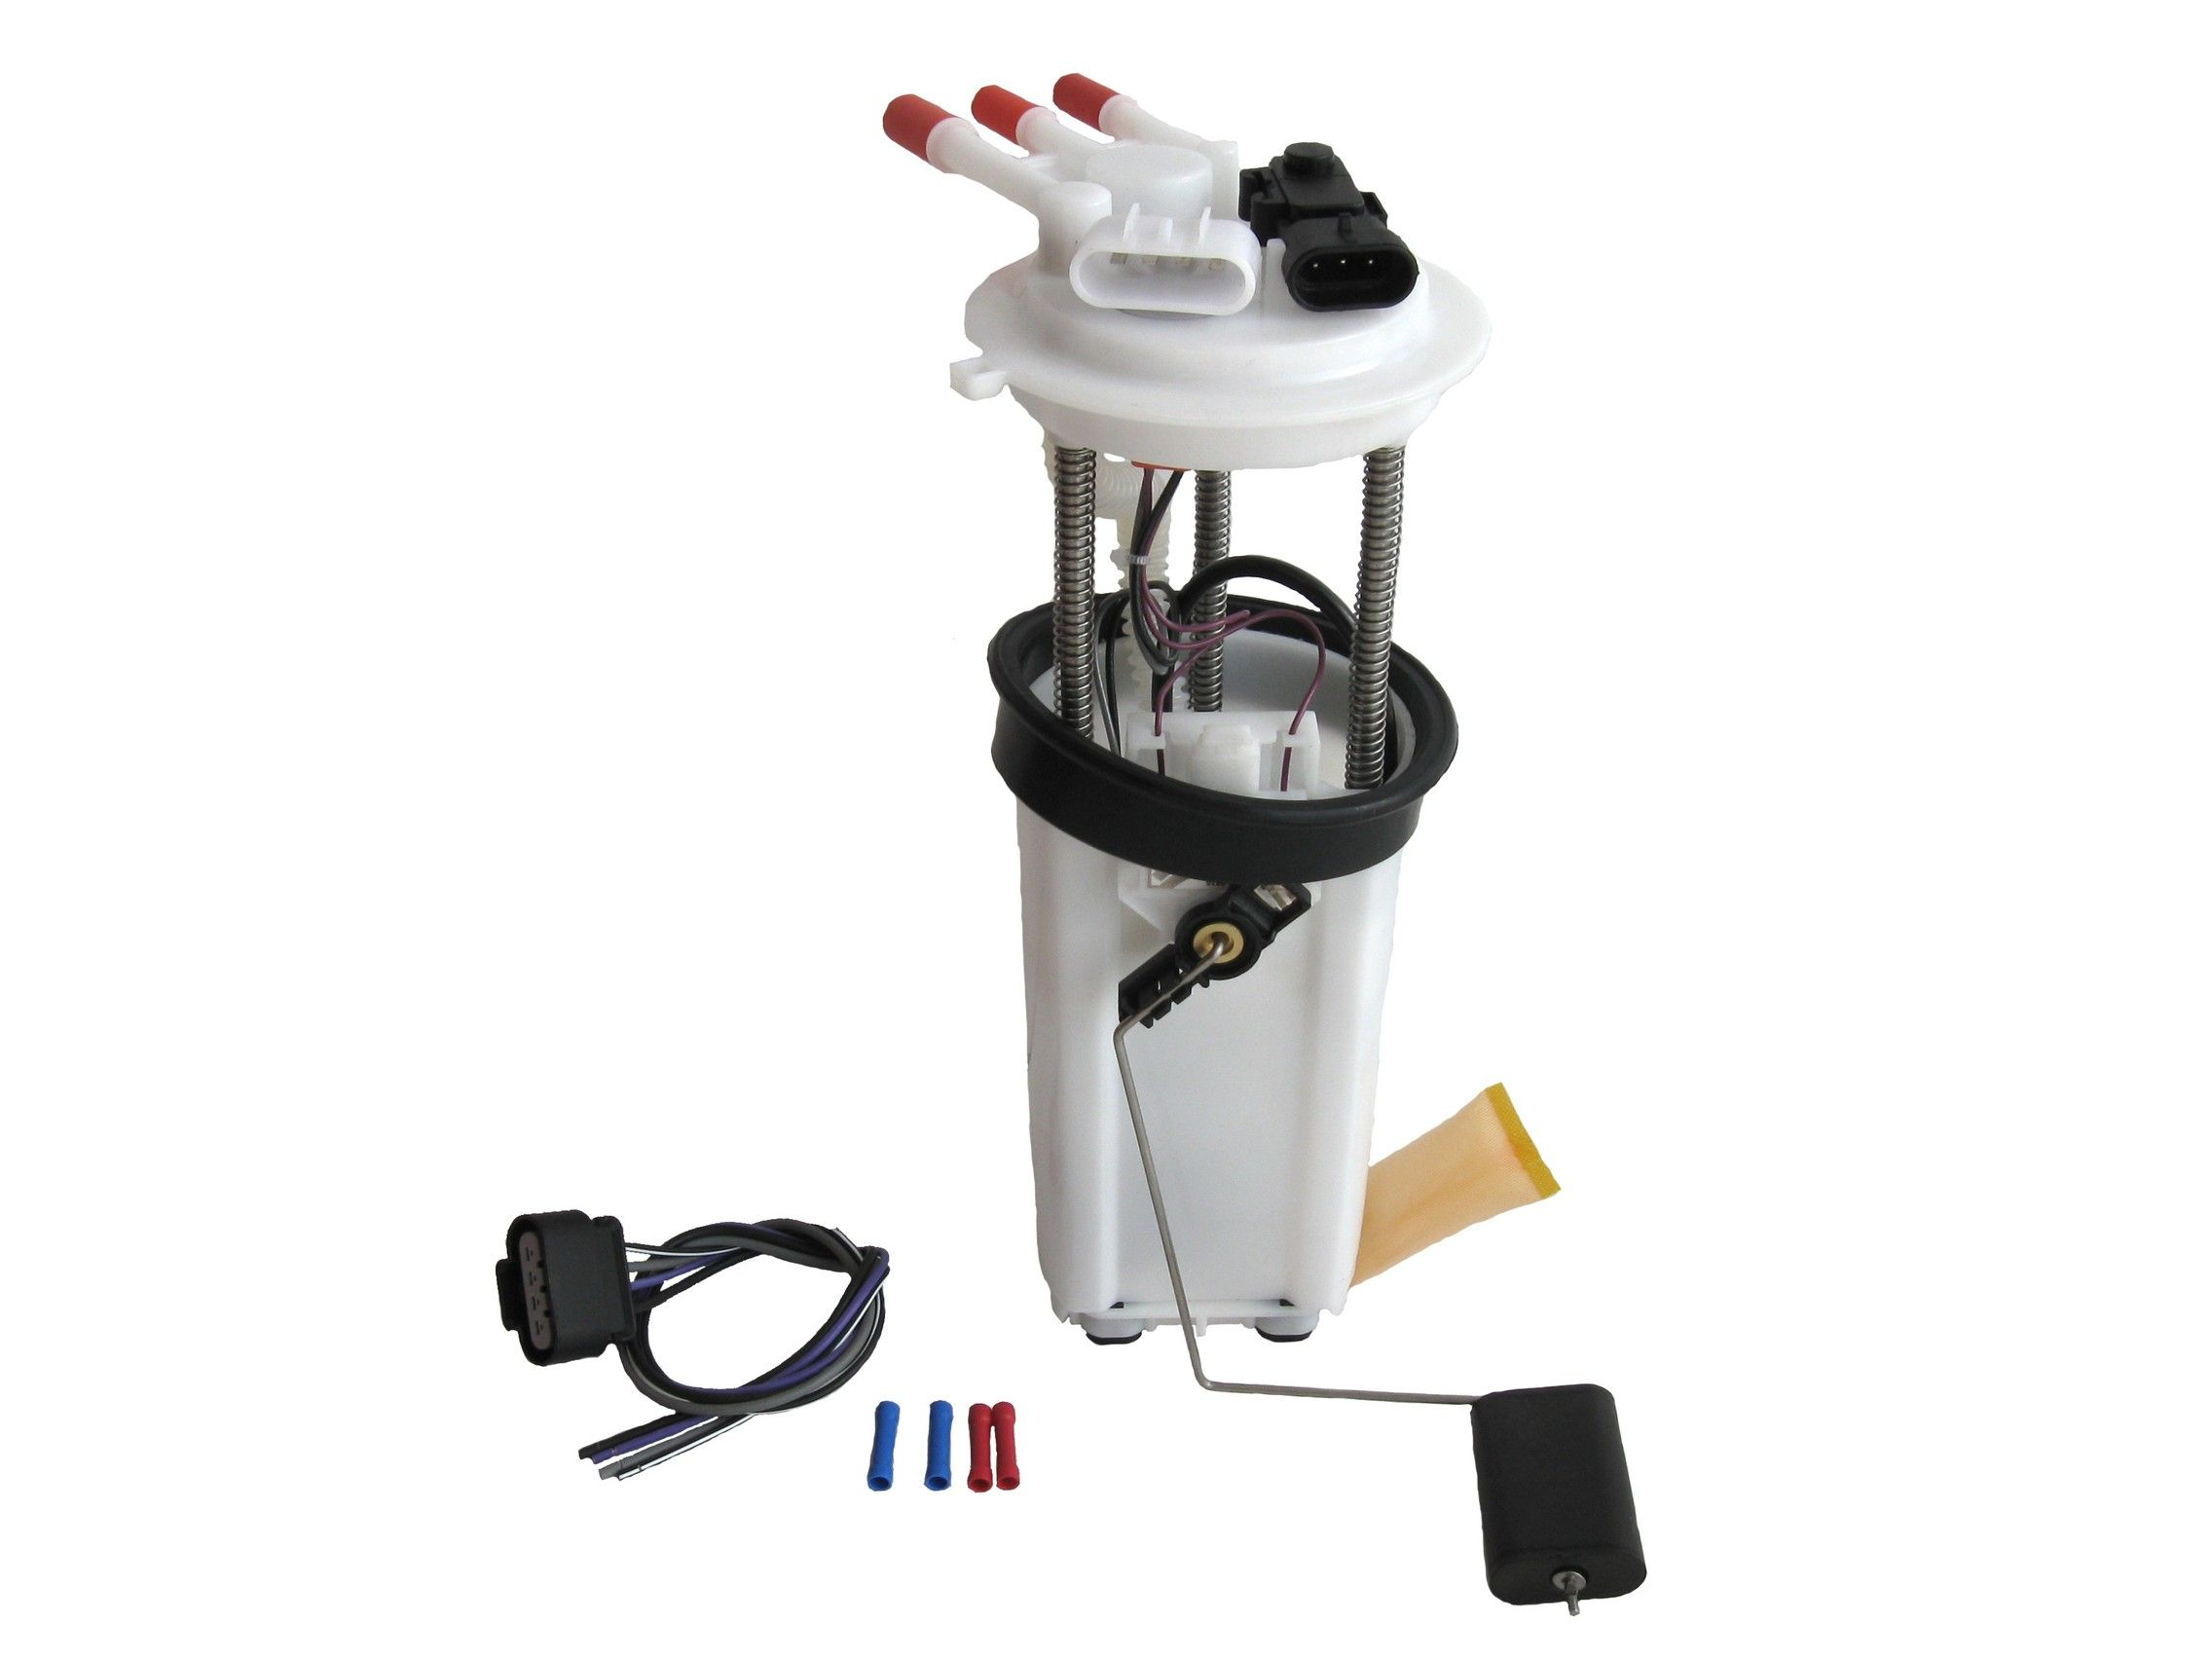 Gmc Jimmy Fuel Pump Module Assembly Replacement Acdelco Airtex 4 Wire Harness Includes Sending Unit Float Reservoir Strainer Upgraded Electrical Connector And Tank Seal Wiring Included